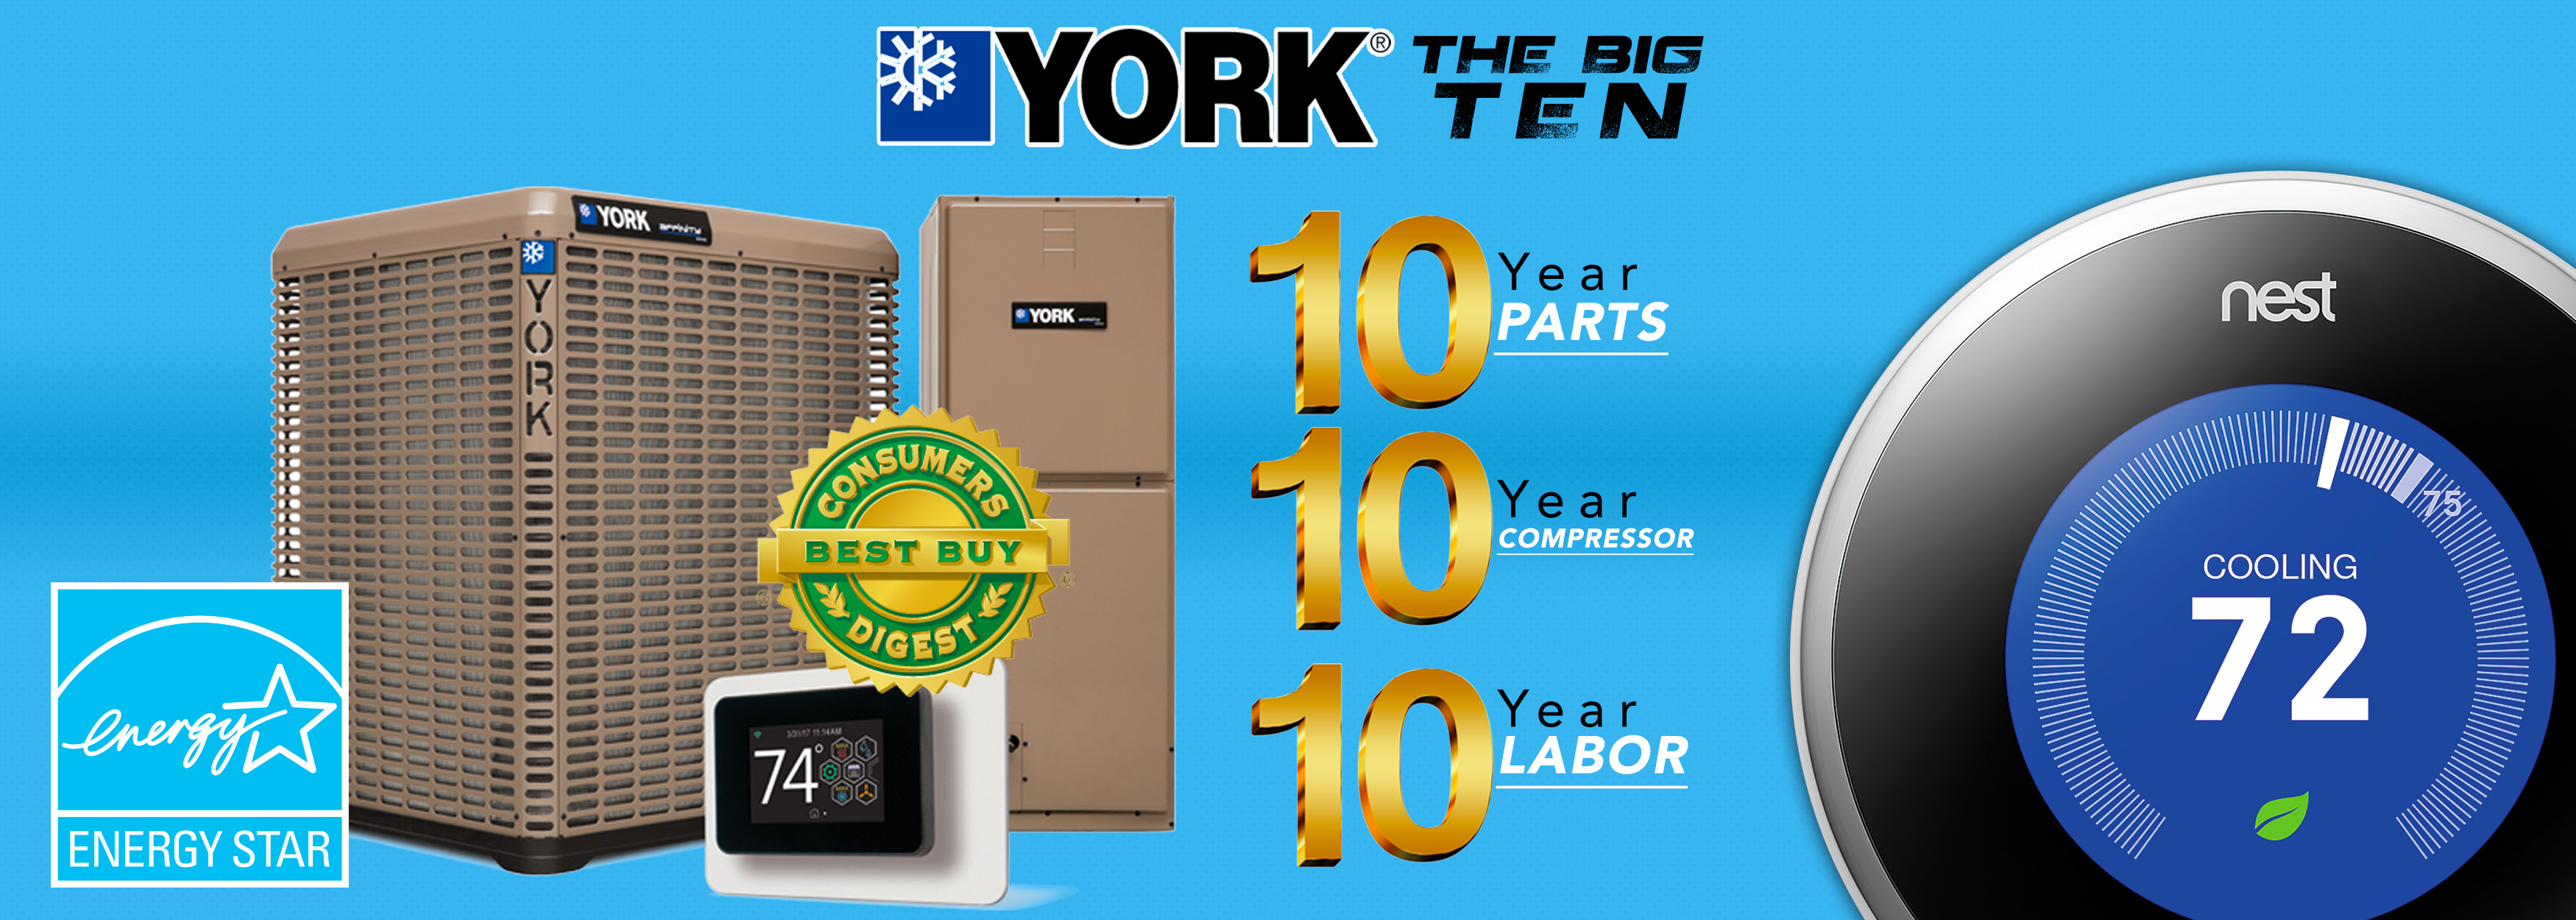 York HVAC Sales Event